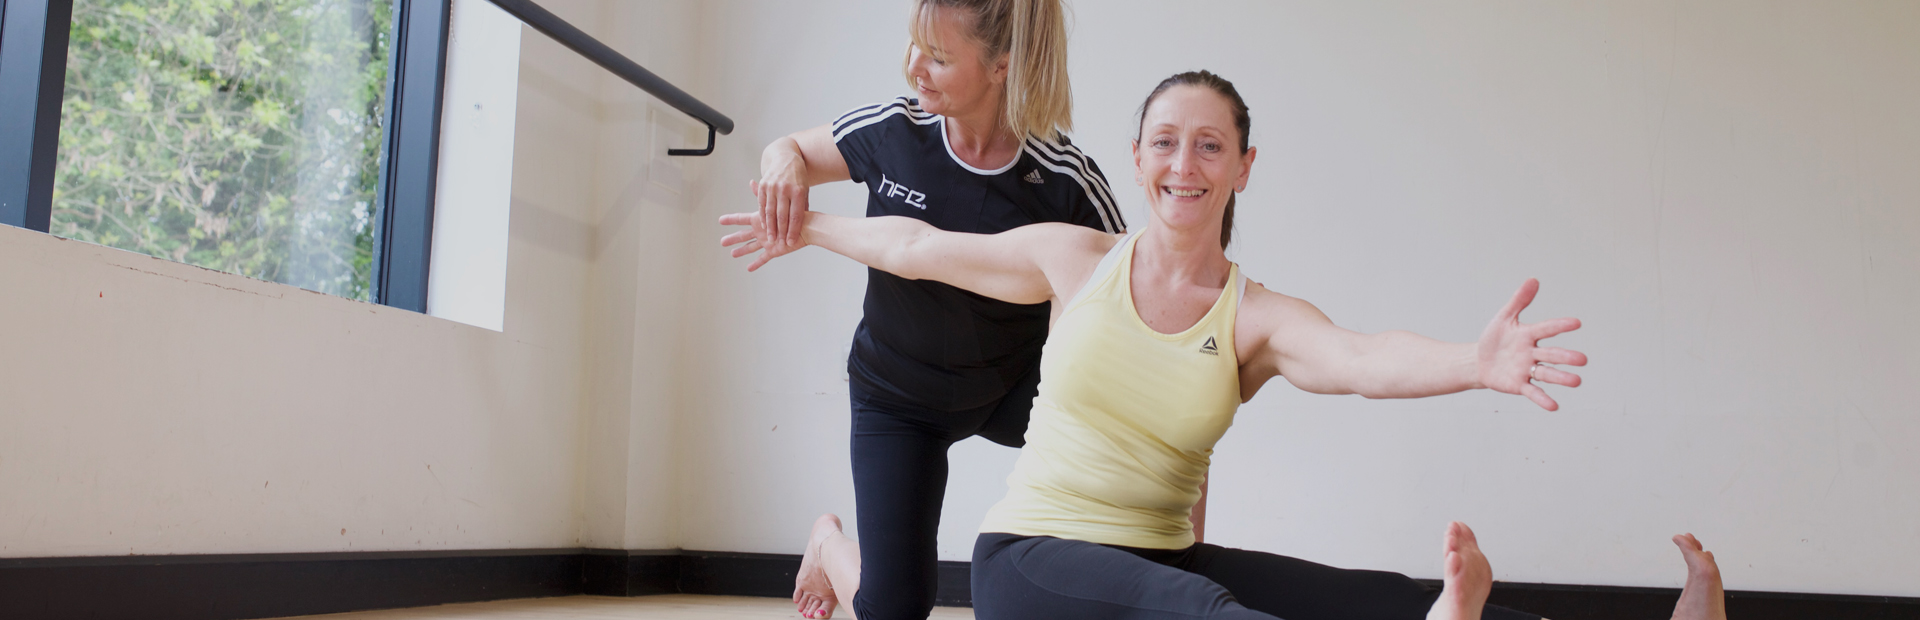 Pilates instructor working with an older adult